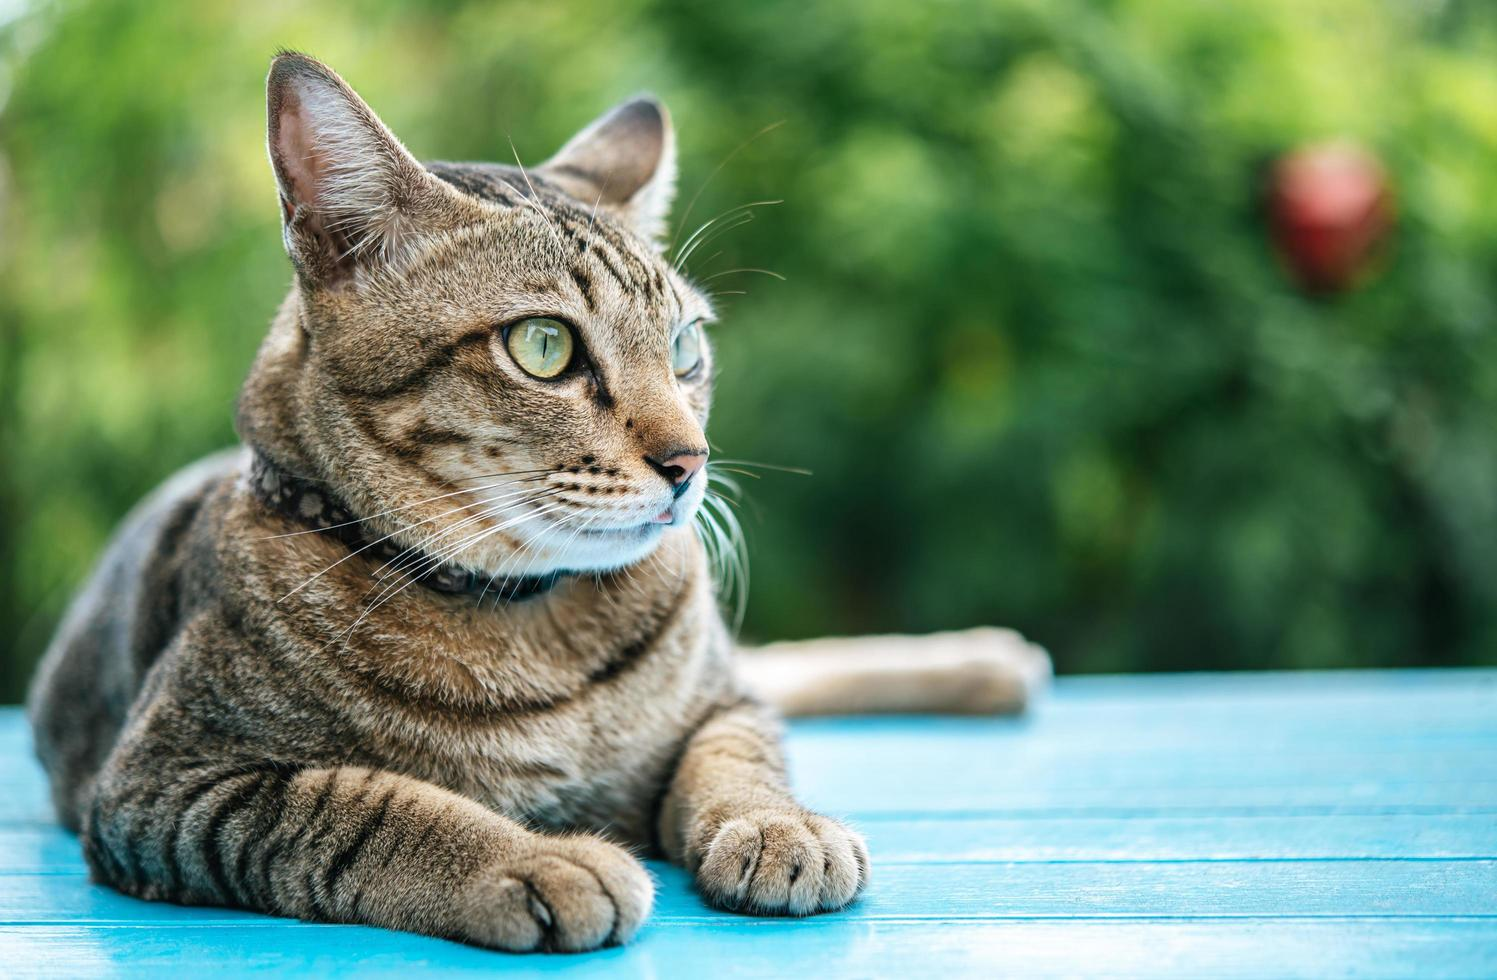 Close-up of a tabby cat on a blue surface photo